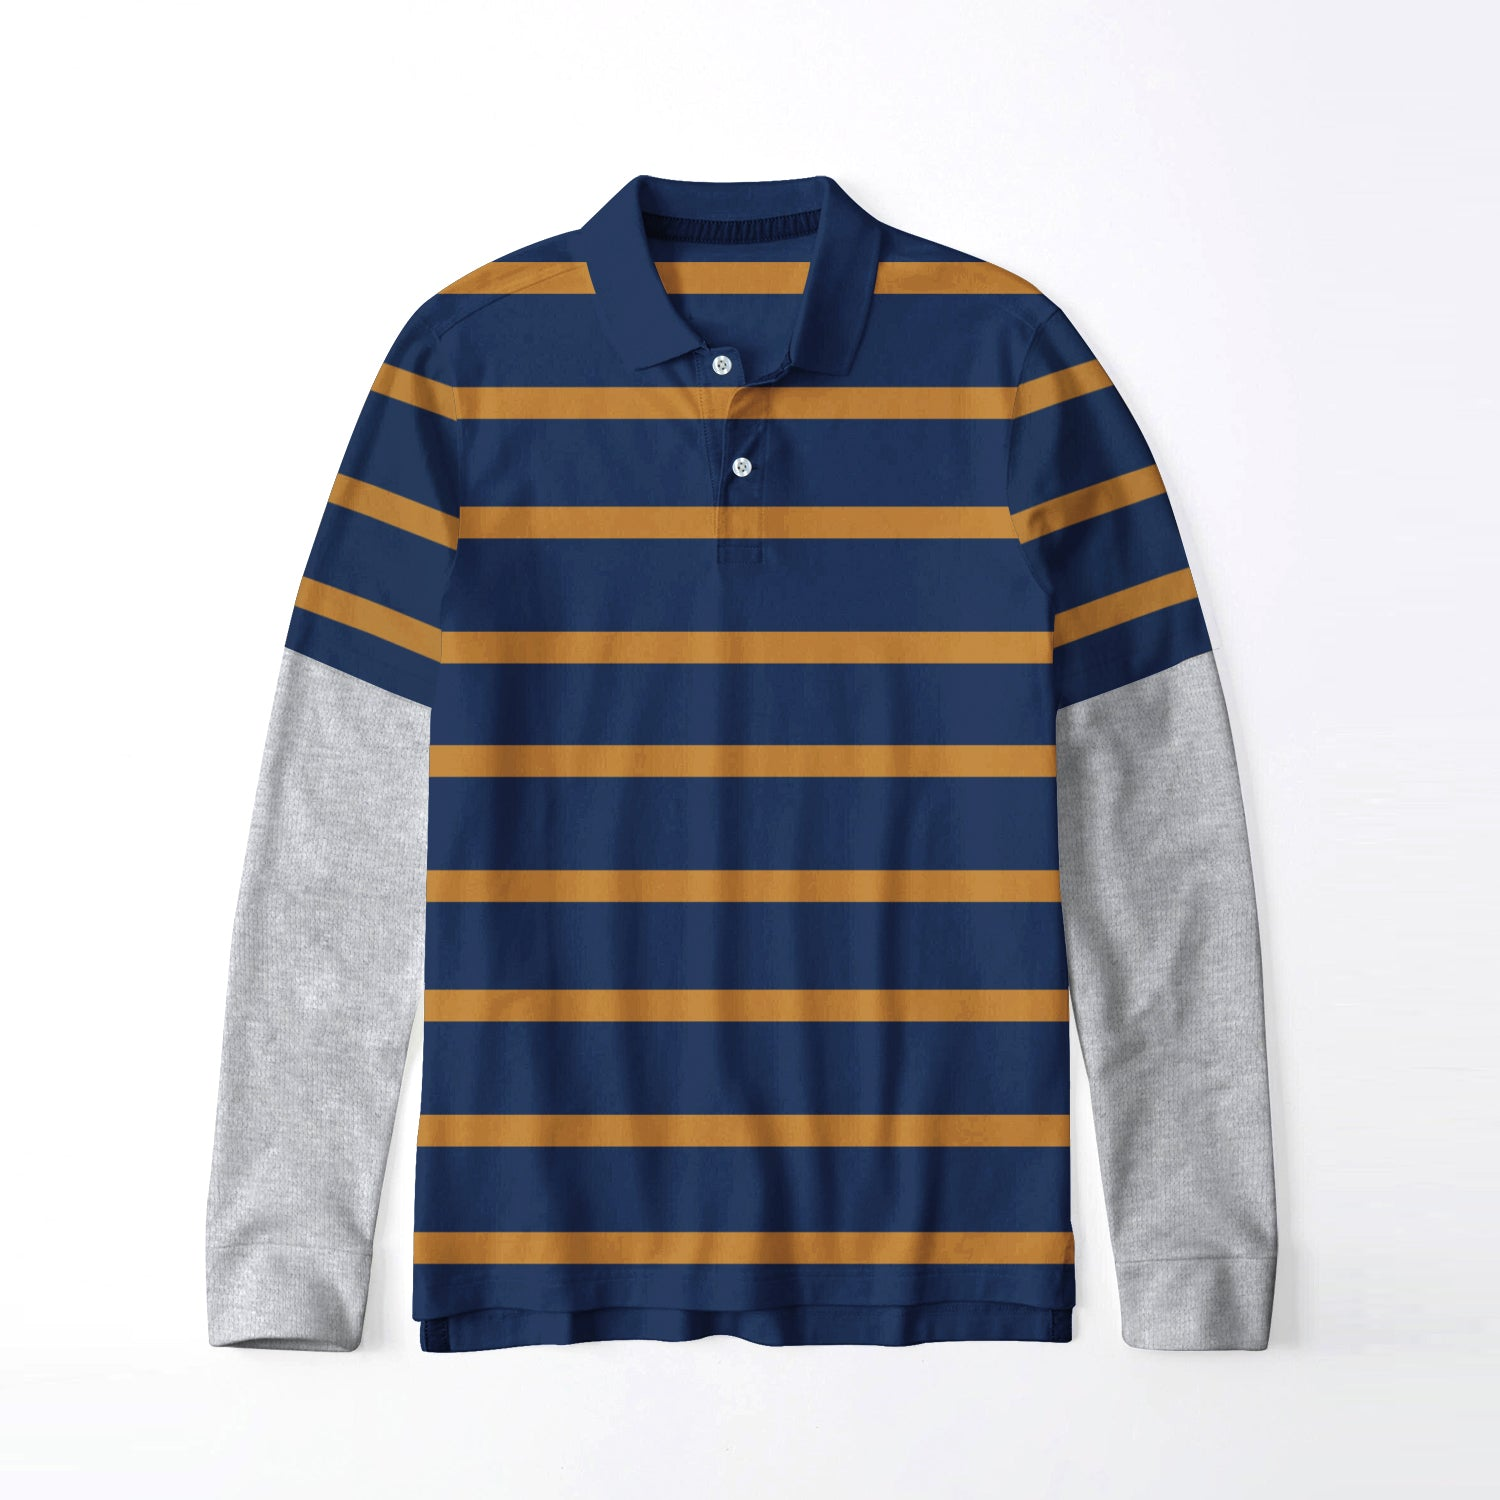 Next Single Jersey Long Sleeve Polo Shirt For Men-Navy & Yellow Stripe-BE9399